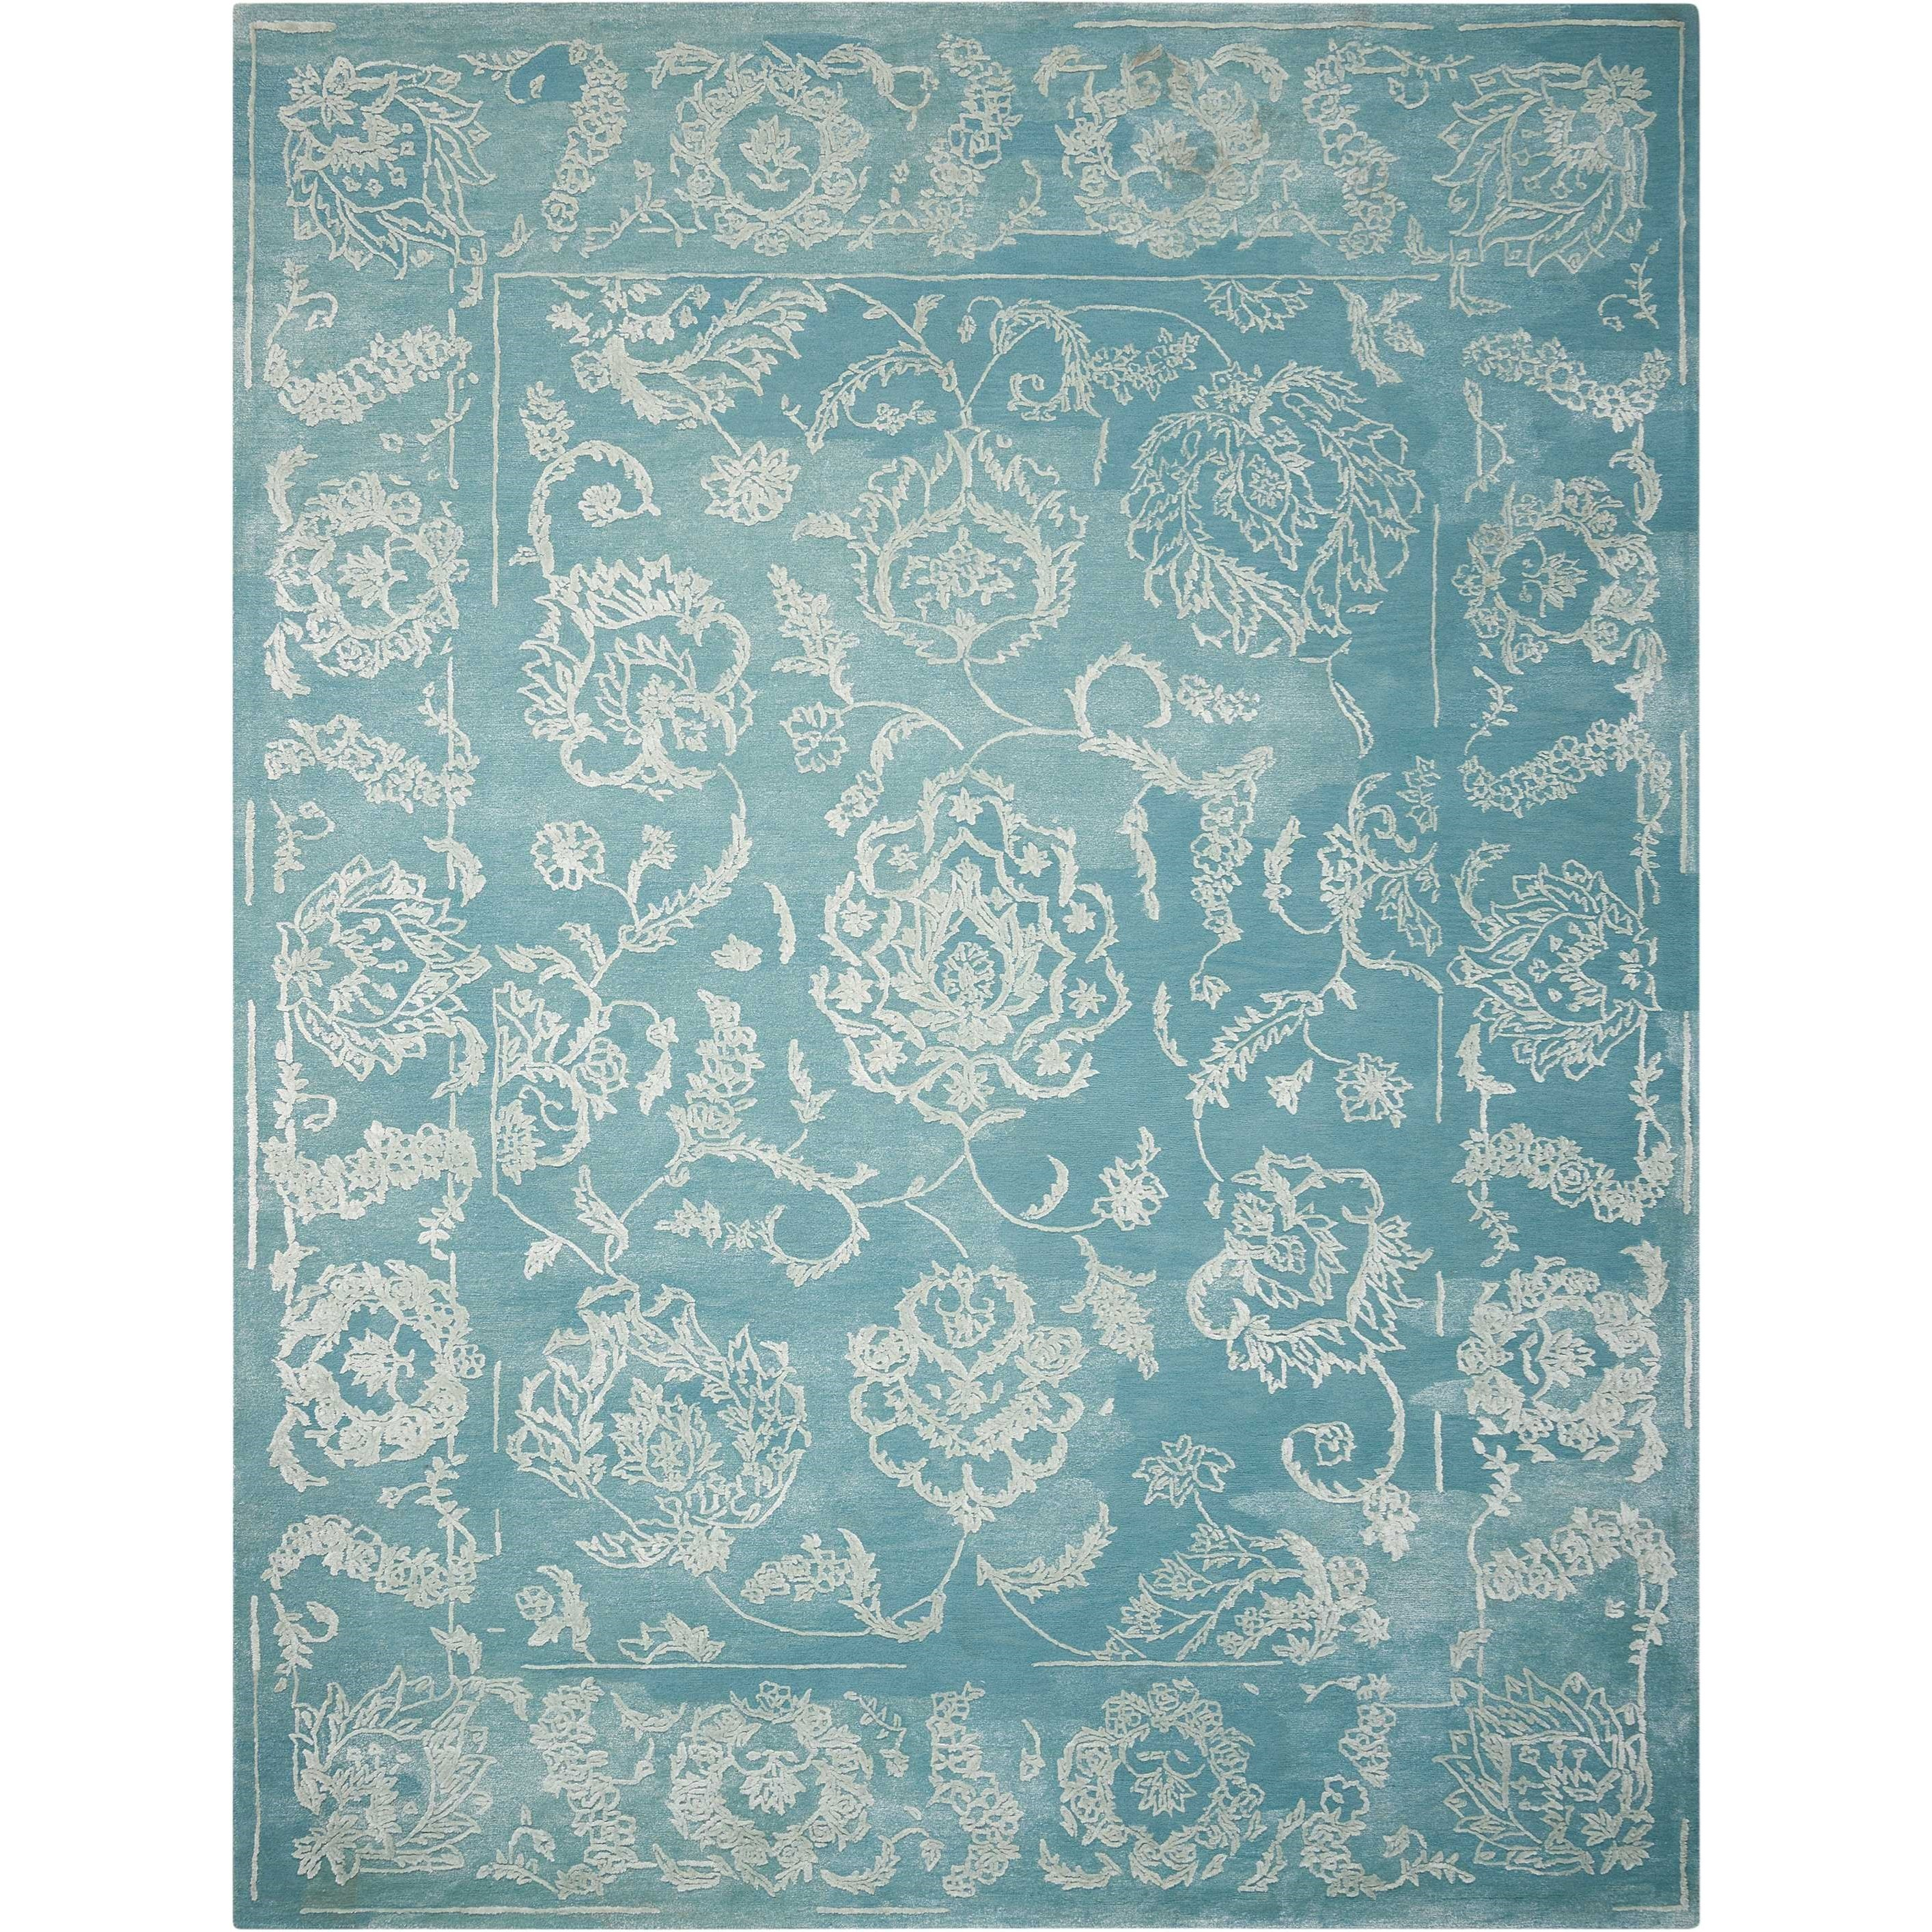 "Opaline 7'9"" X 9'9"" Aqua Rug by Nourison at Home Collections Furniture"